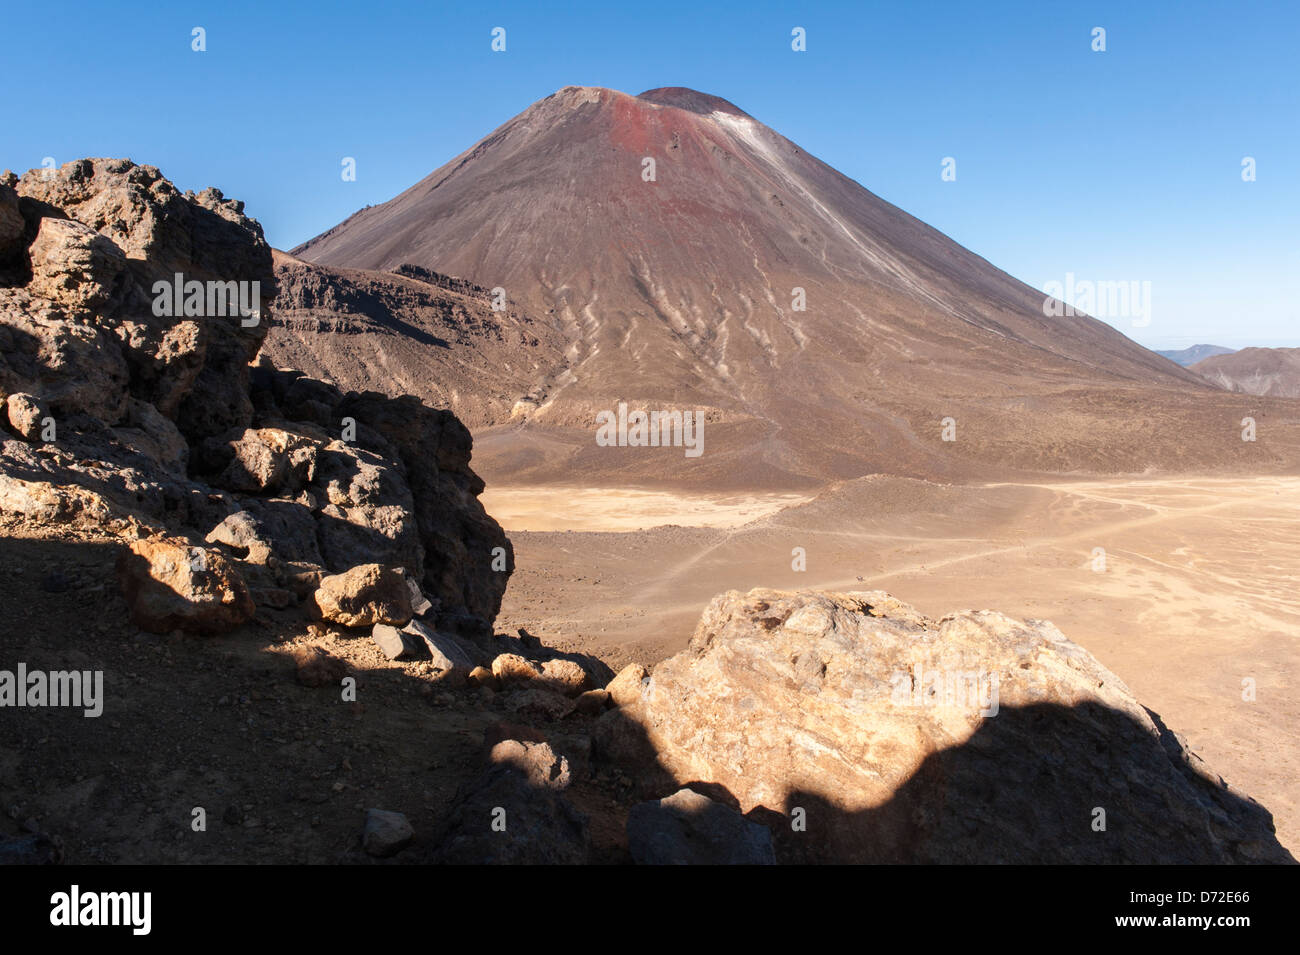 Mount Ngauruhoe, a stratovolcano and the film location for Mount Doom in Lord of the Rings, seen from the Tongariro - Stock Image